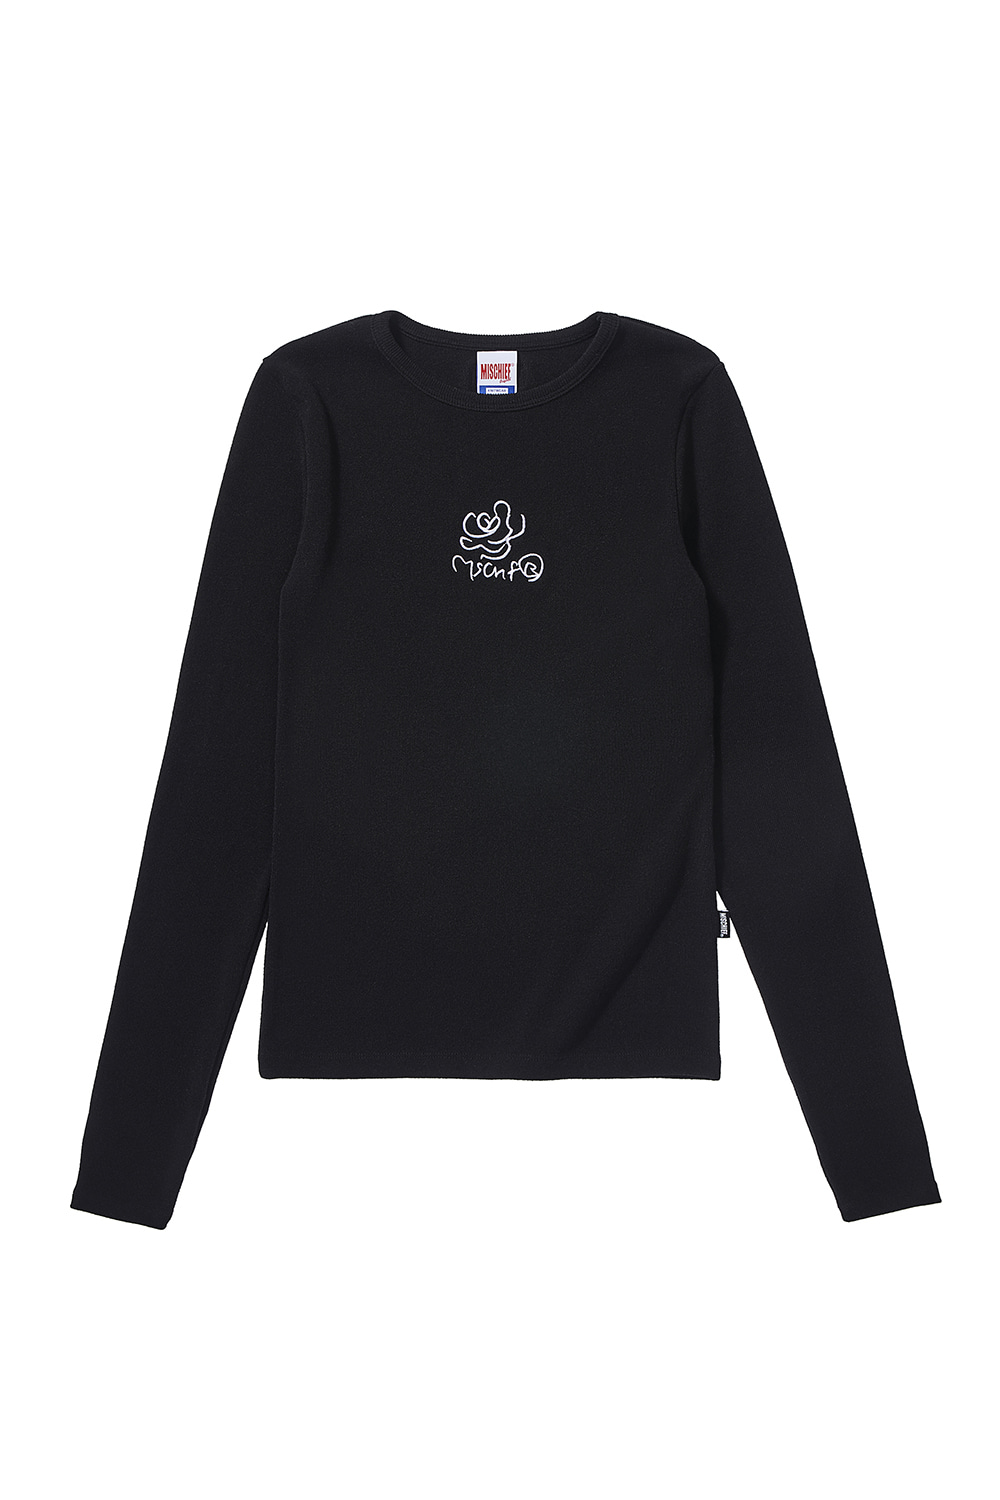 FITTED ROSE LONG SLEEVE_black